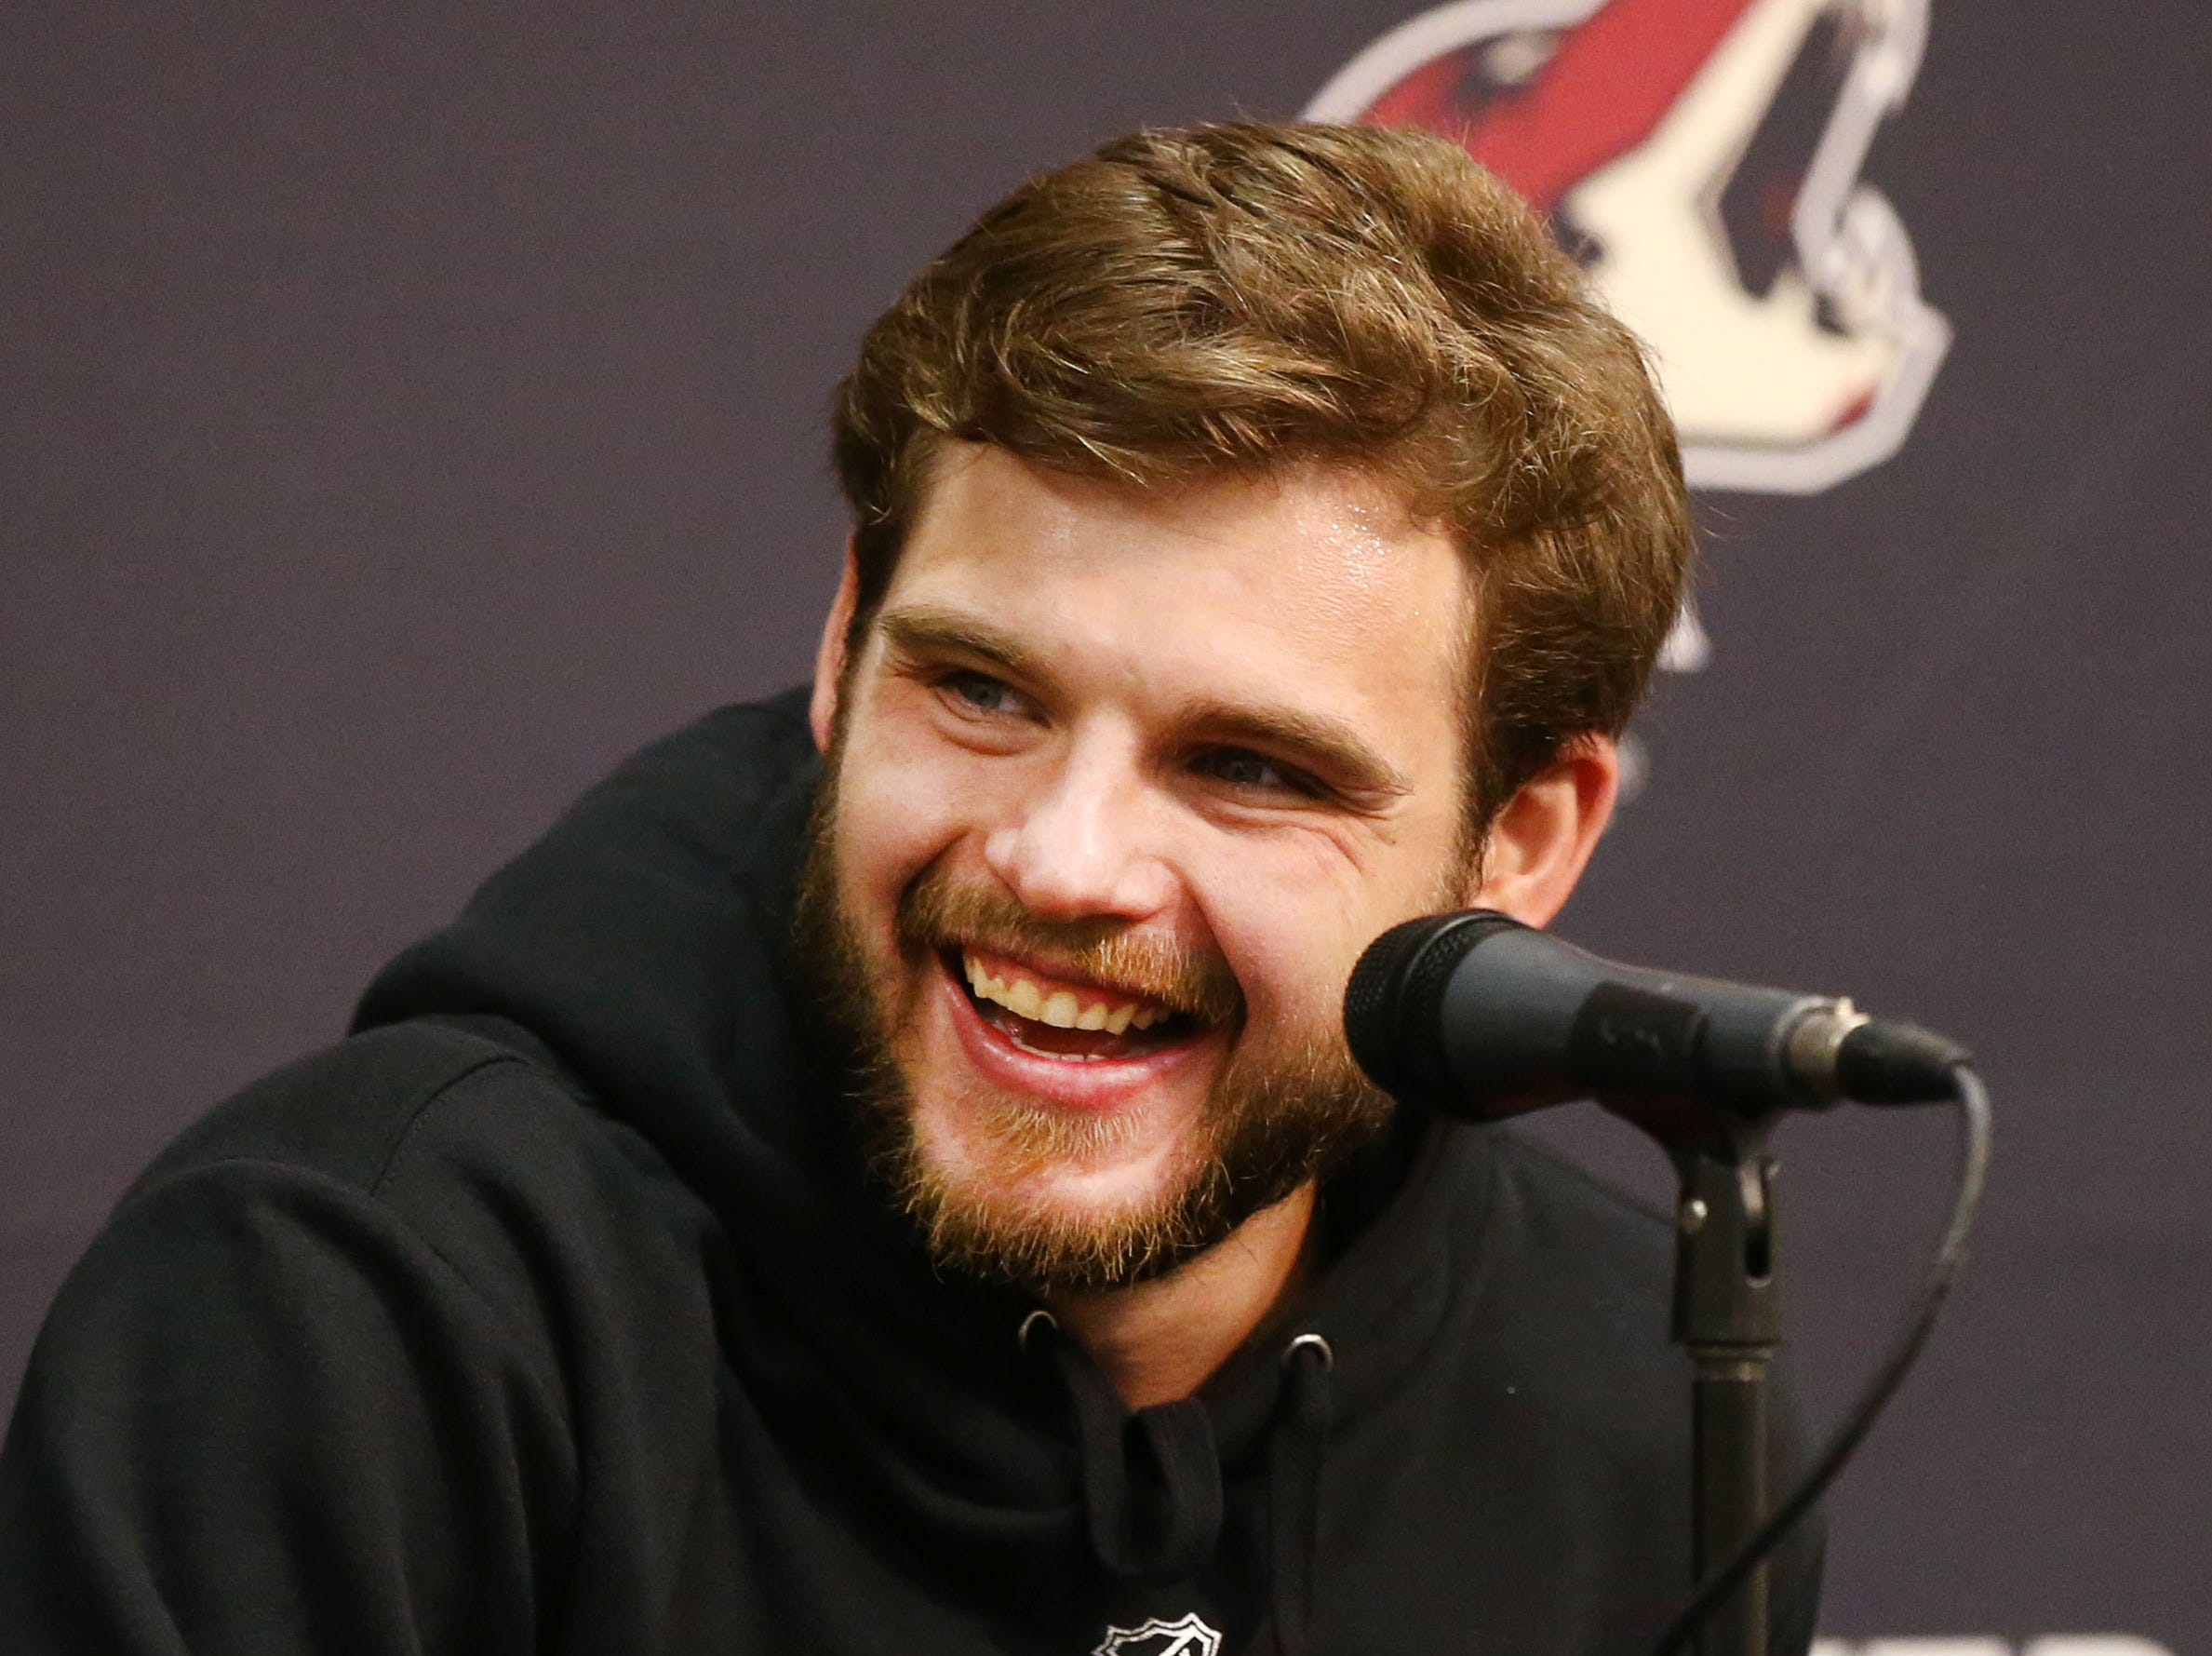 Arizona Coyotes center Alex Galchenyuk during media day on Sep.13, 2018, at Gila River Arena in Glendale, Ariz.